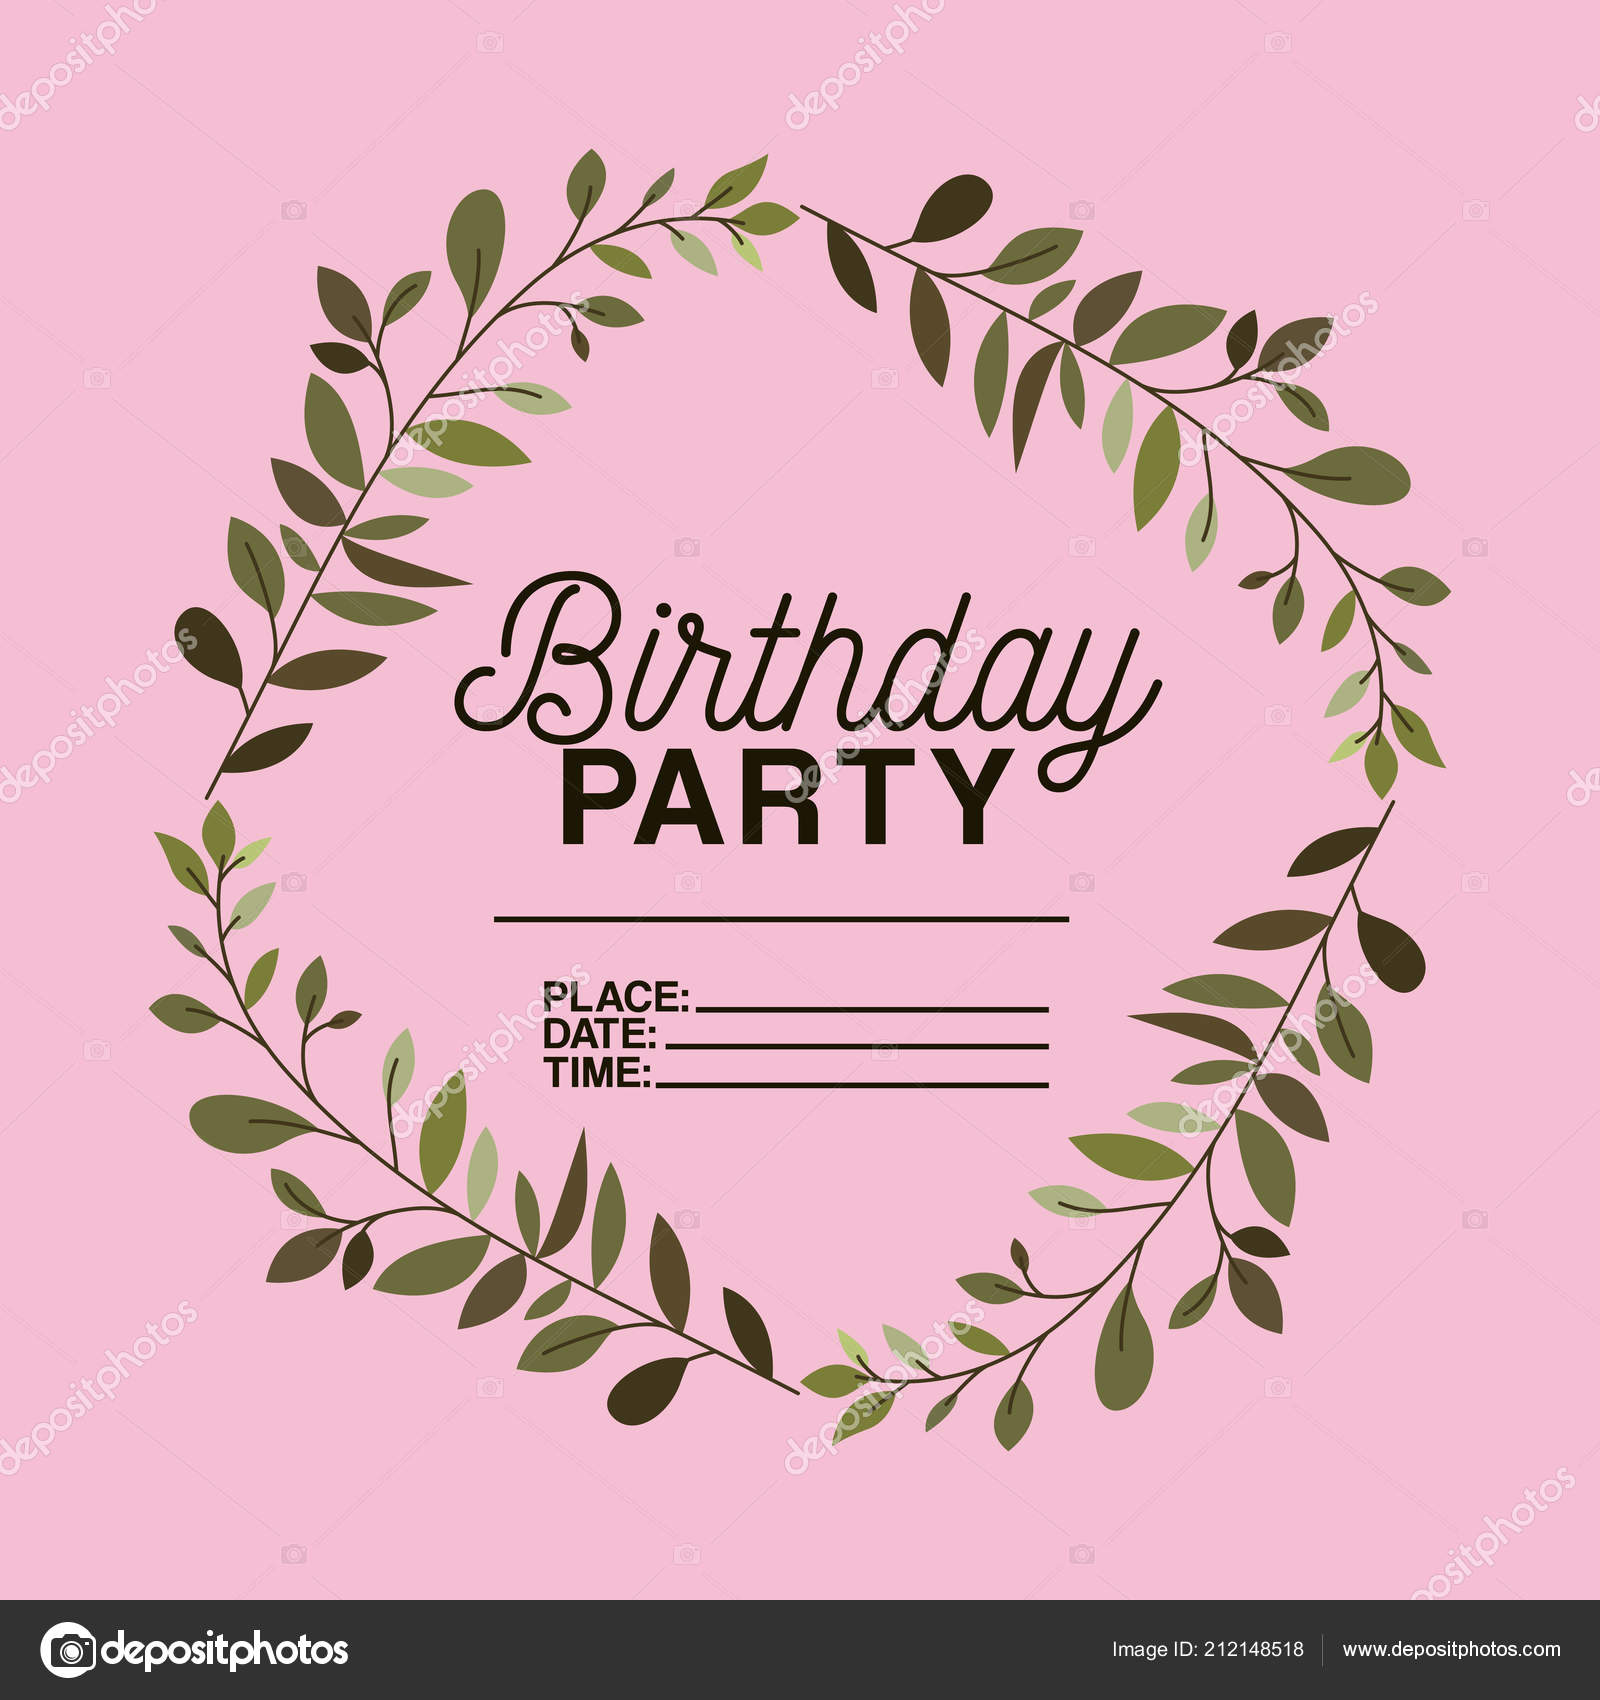 Birthday party invitation floral crown vector illustration design birthday party invitation floral crown vector illustration design vetor de stock stopboris Images